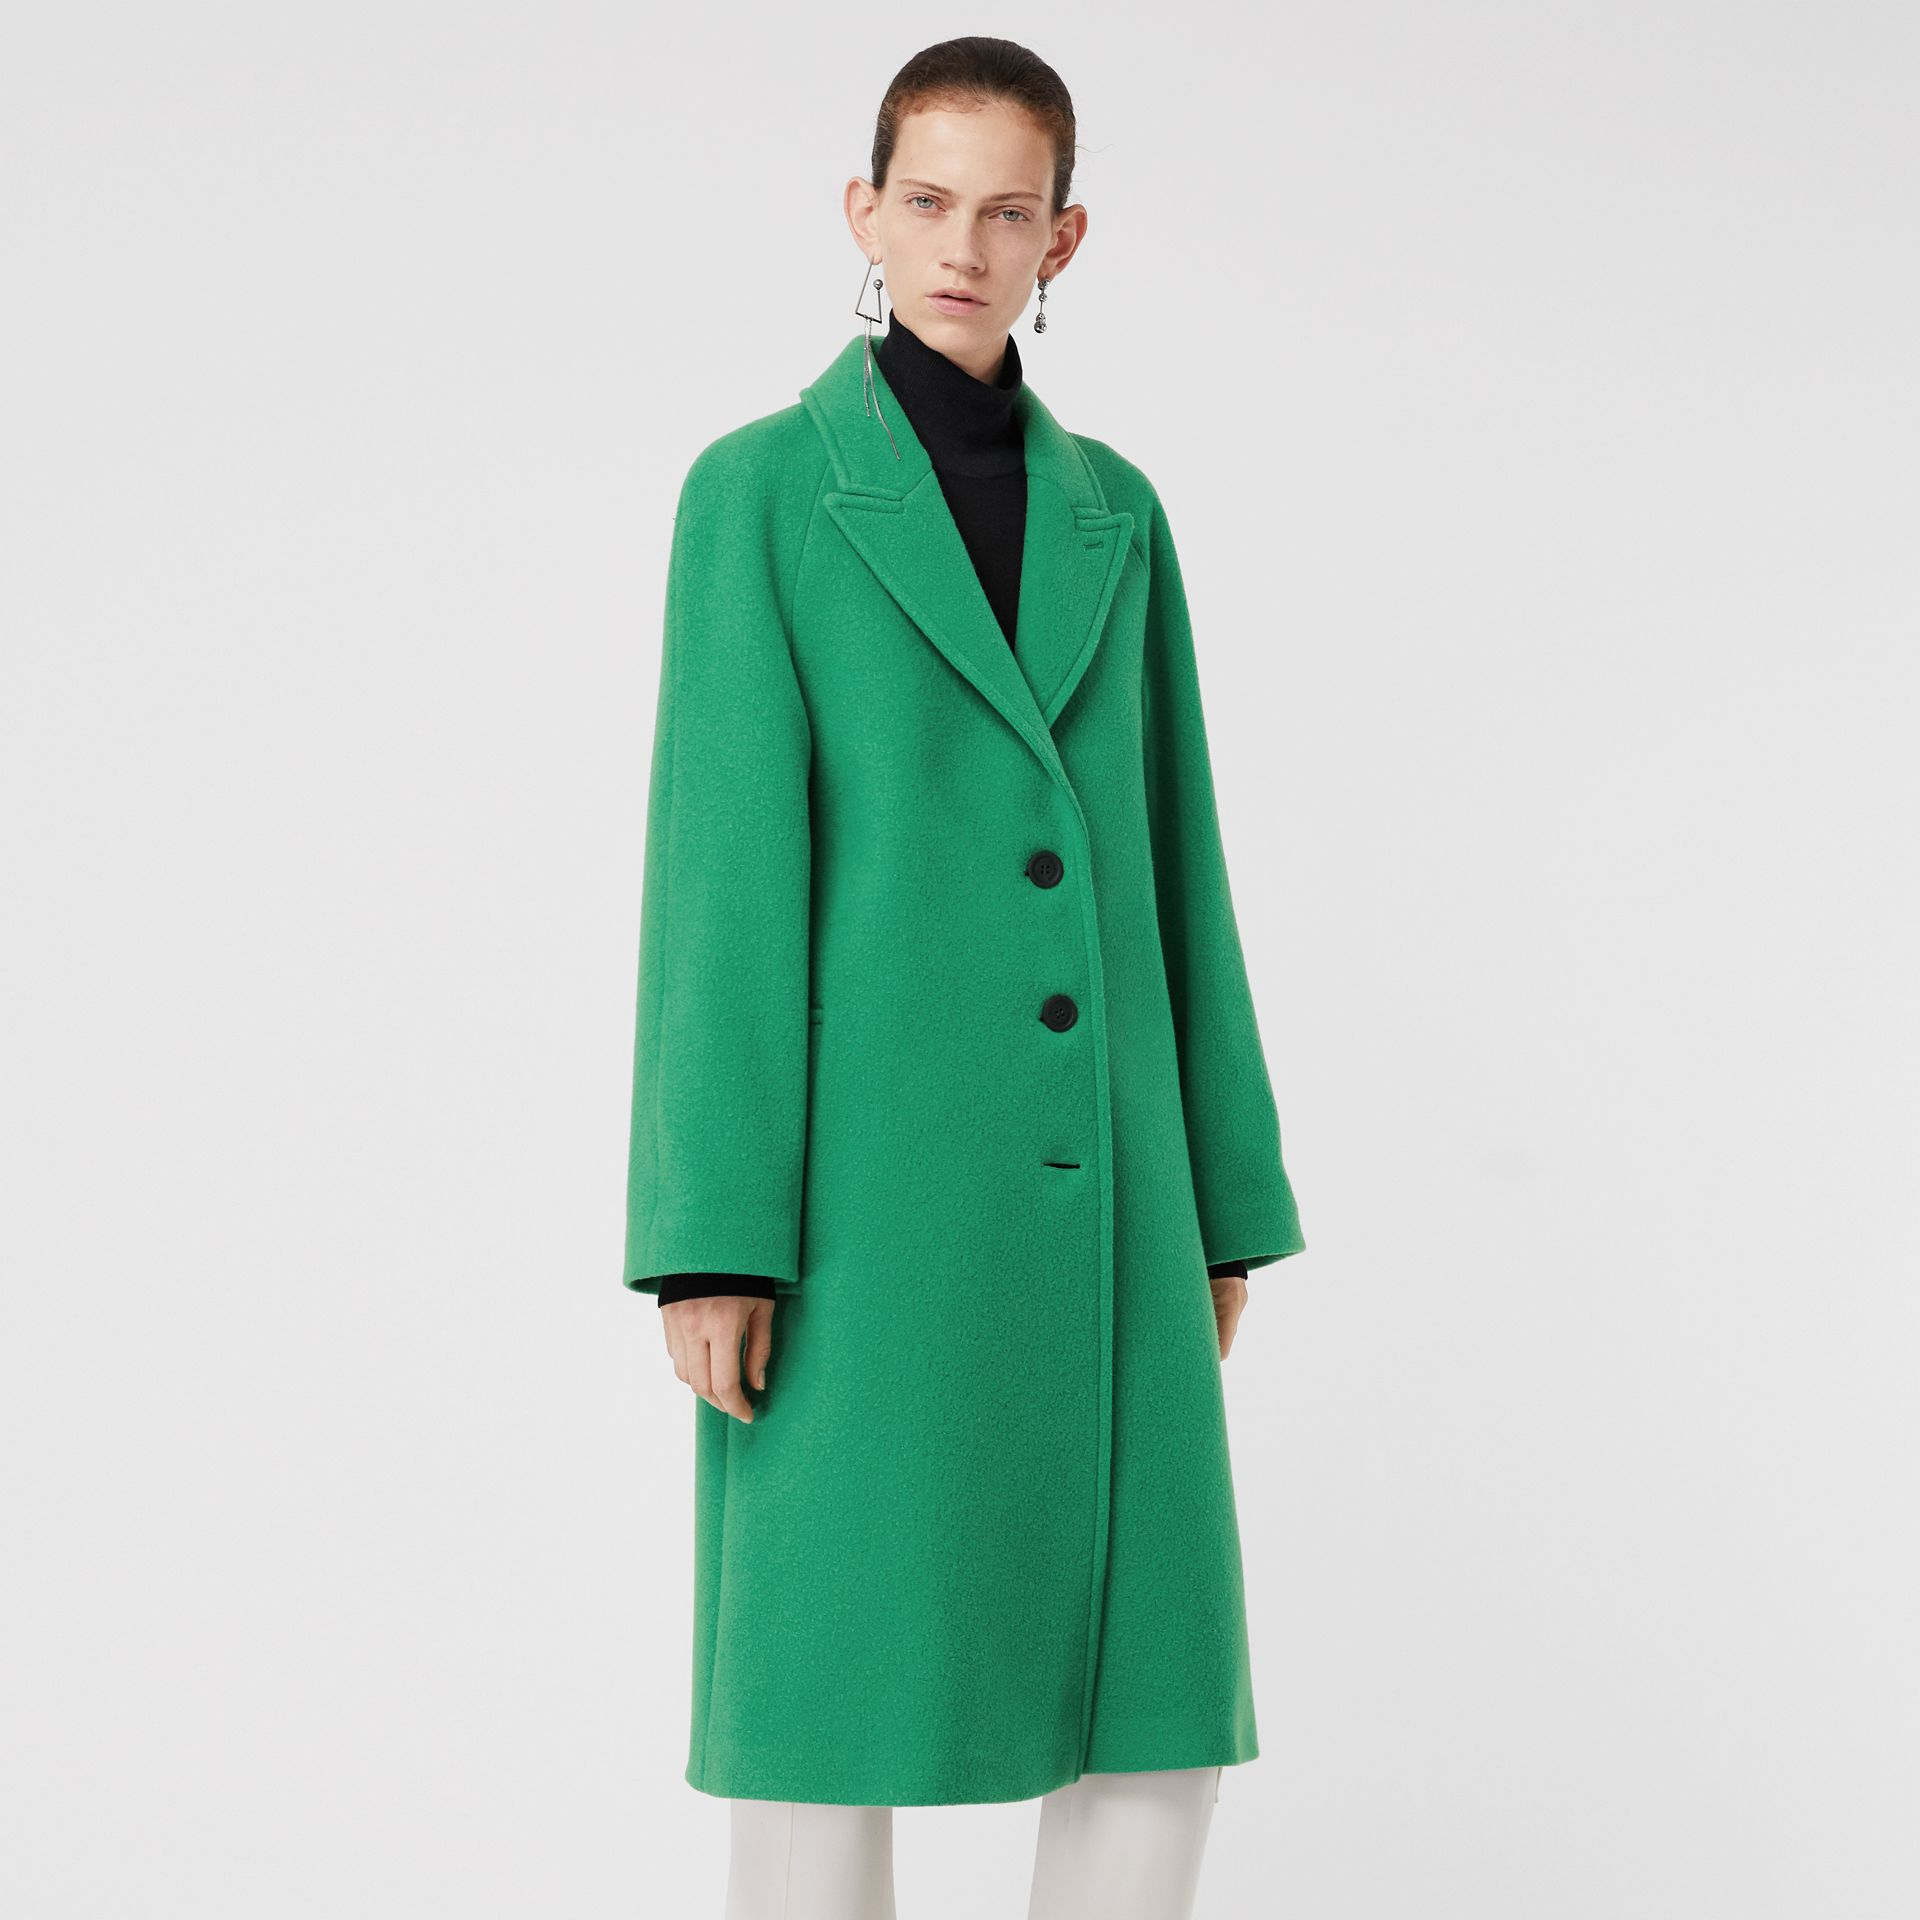 Wool Blend Tailored Coat in Bright Green - Women | Burberry United States - gallery image 5